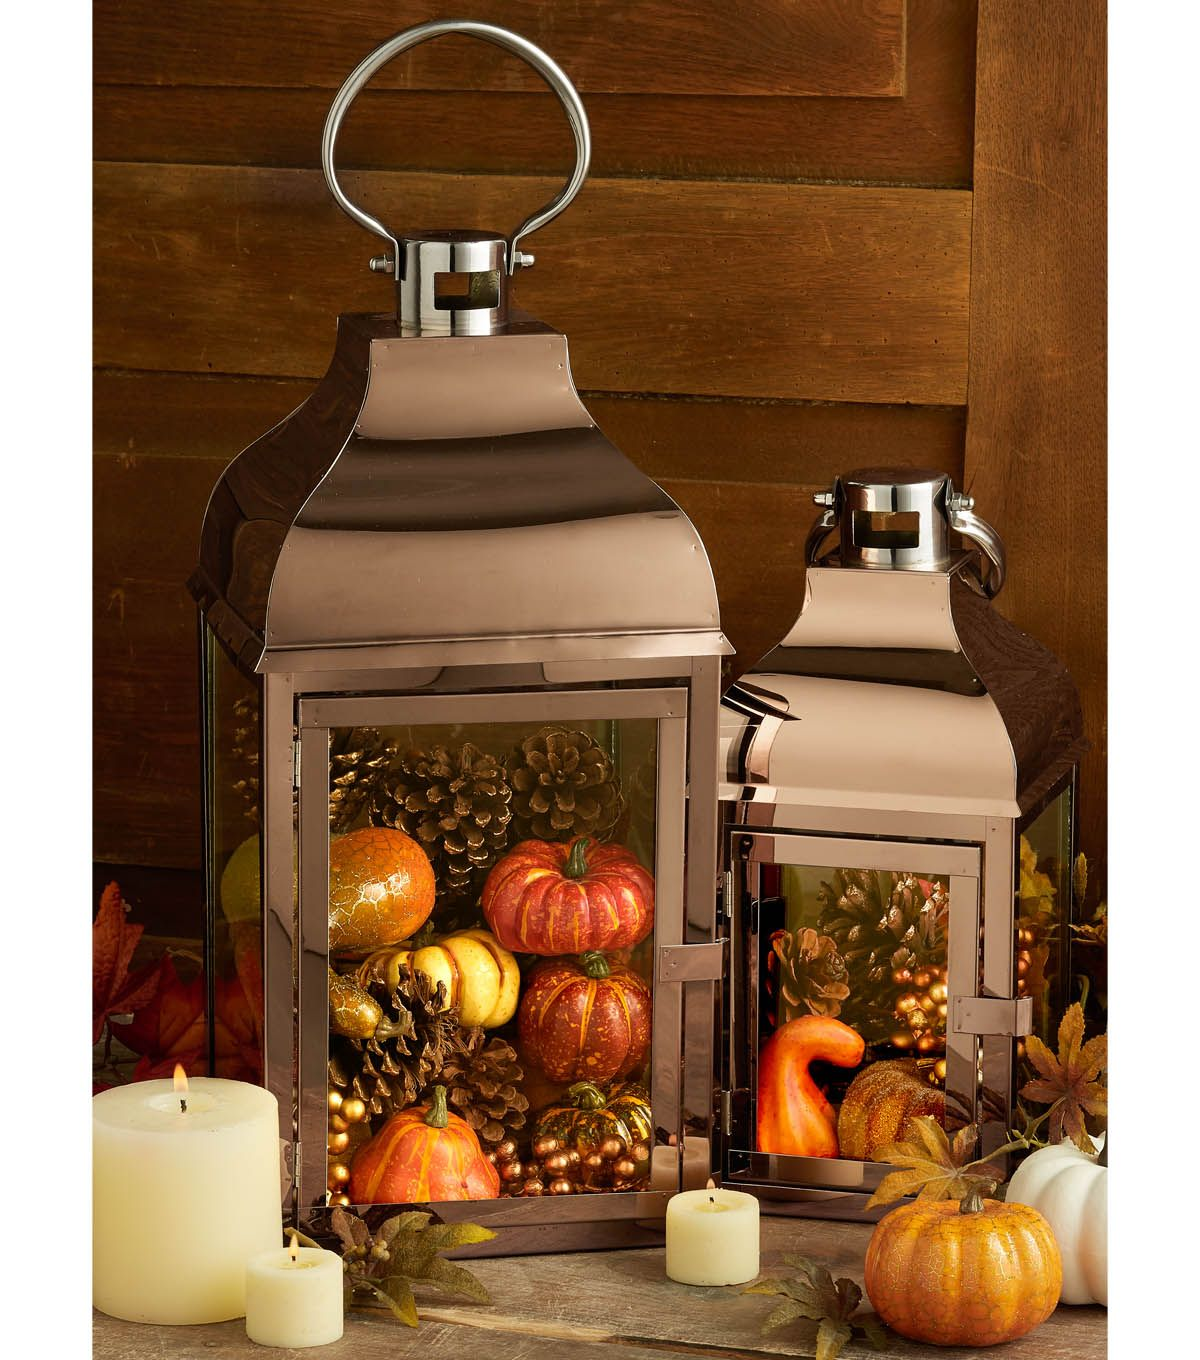 Home Fall Decorating Ideas 2840: Fall Projects With JOANN